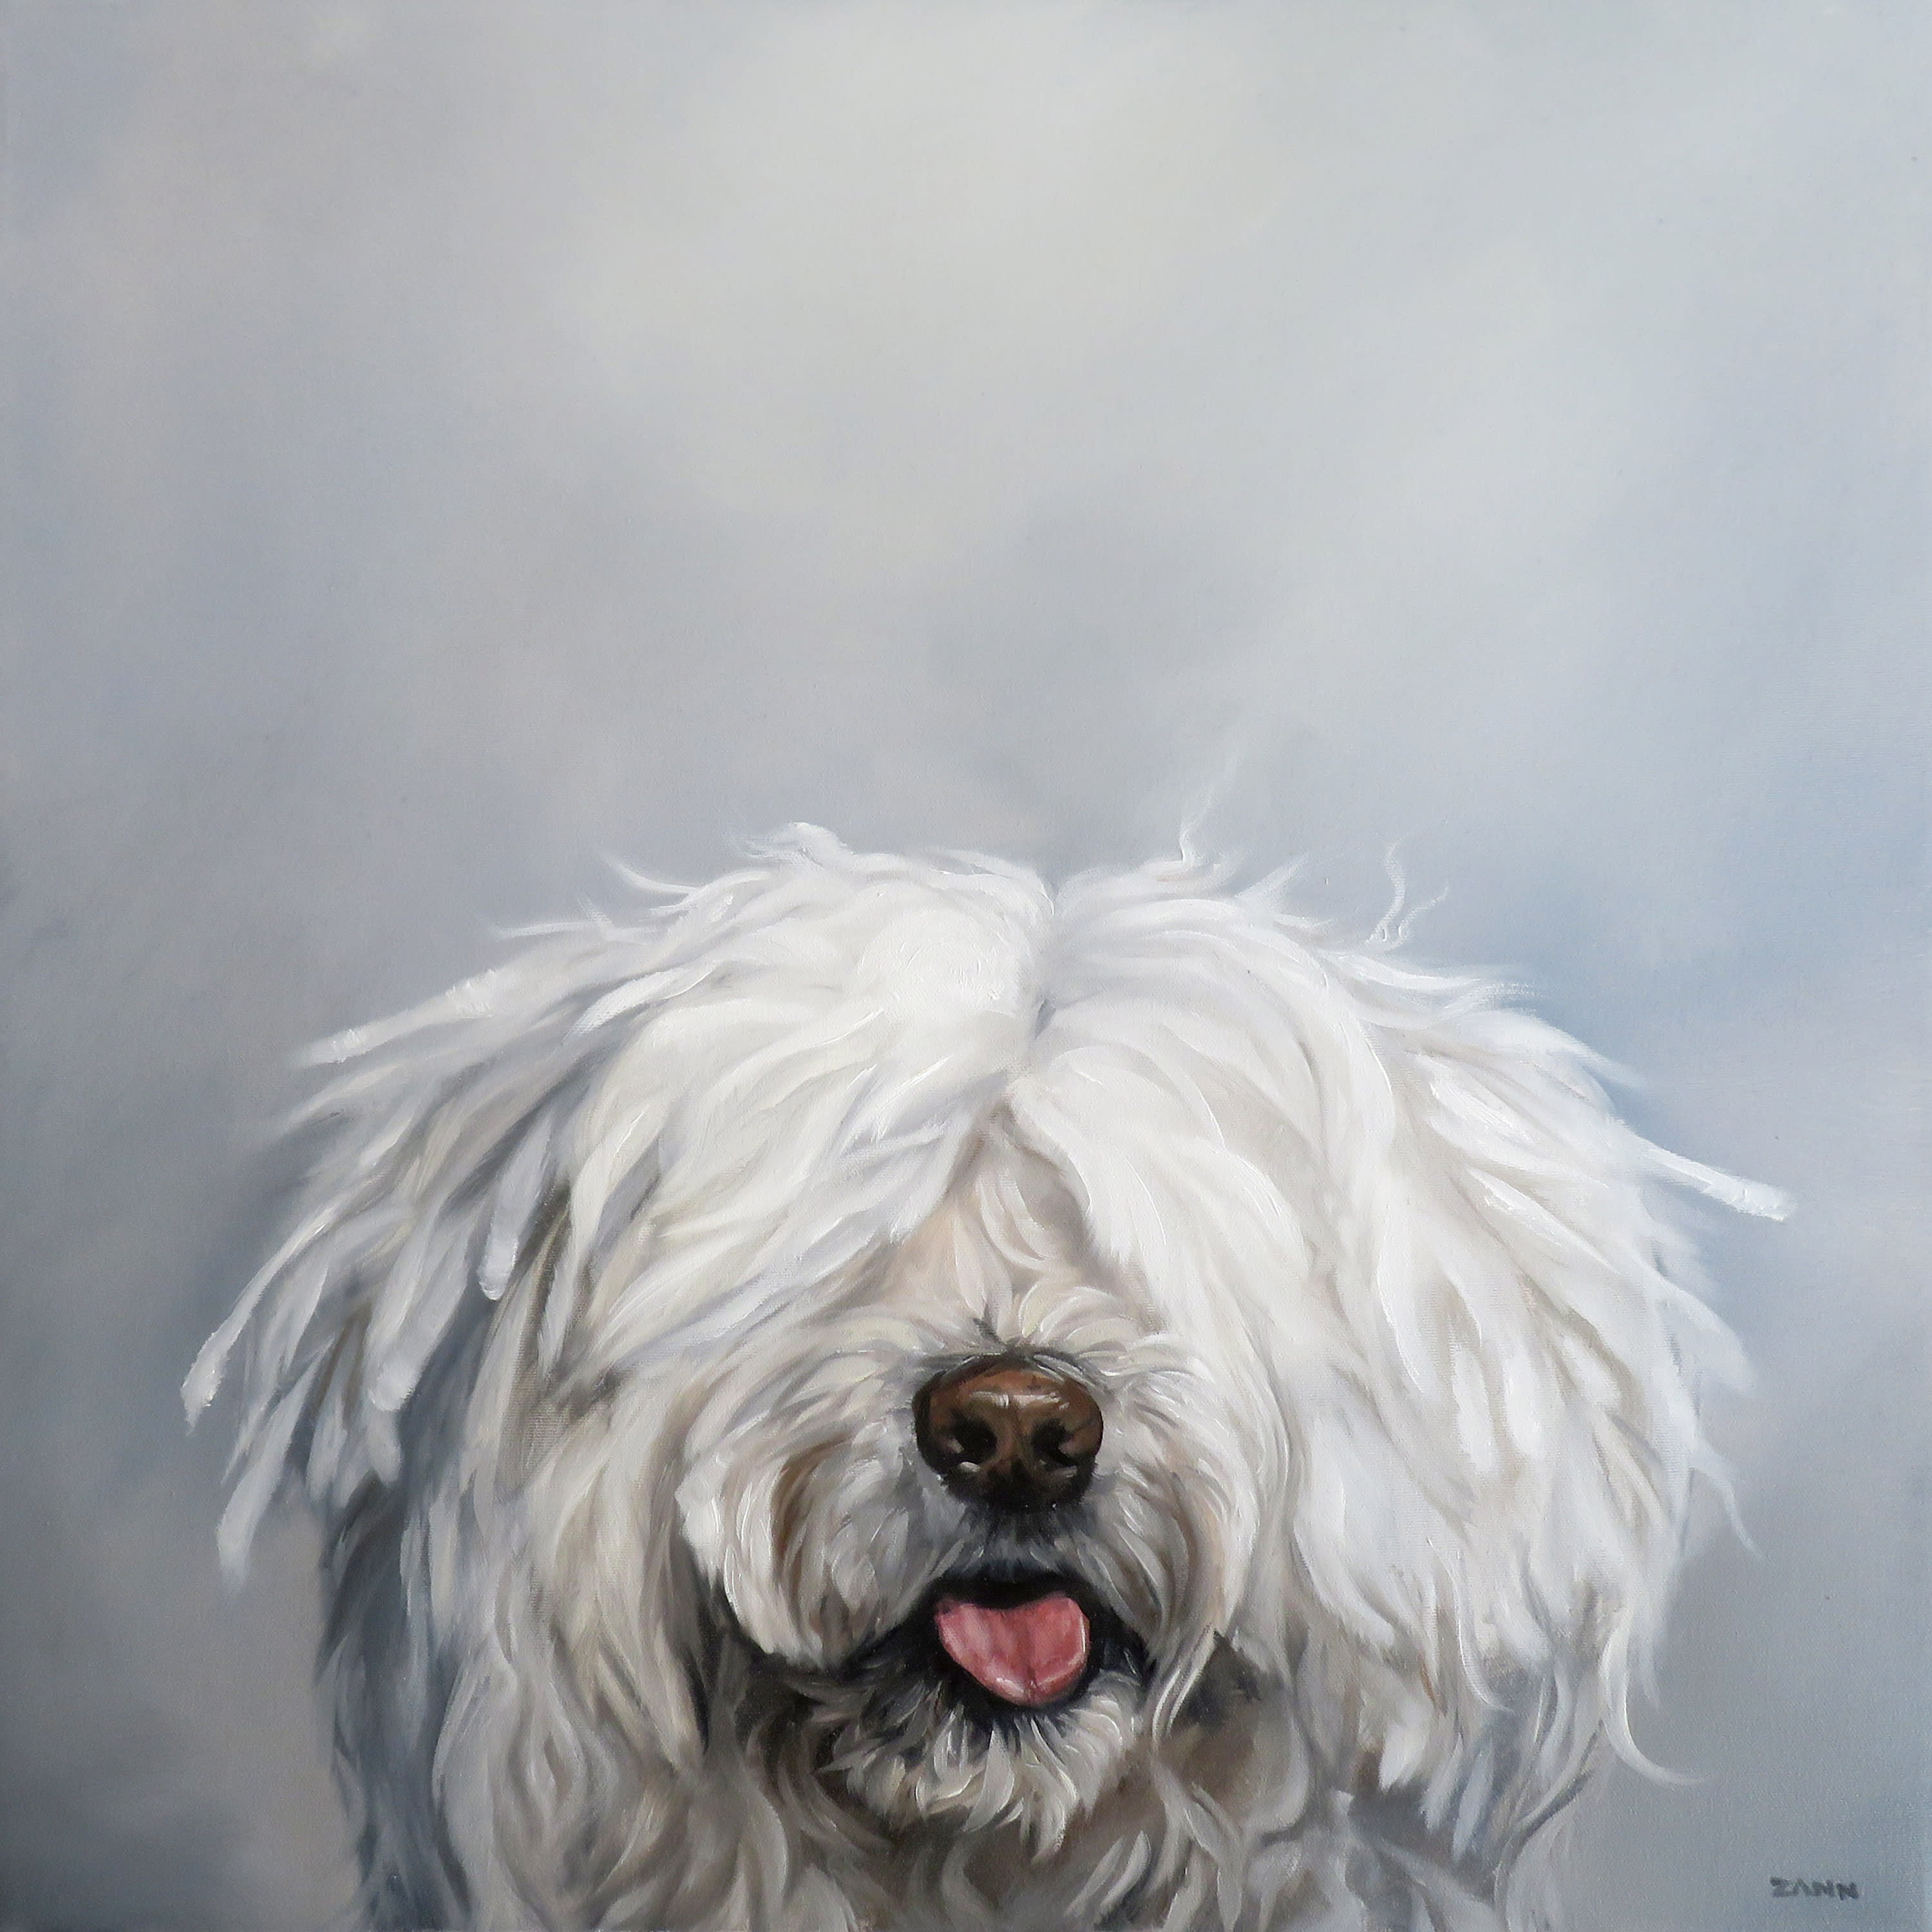 A shaggy dog story in not so many words ybiem5